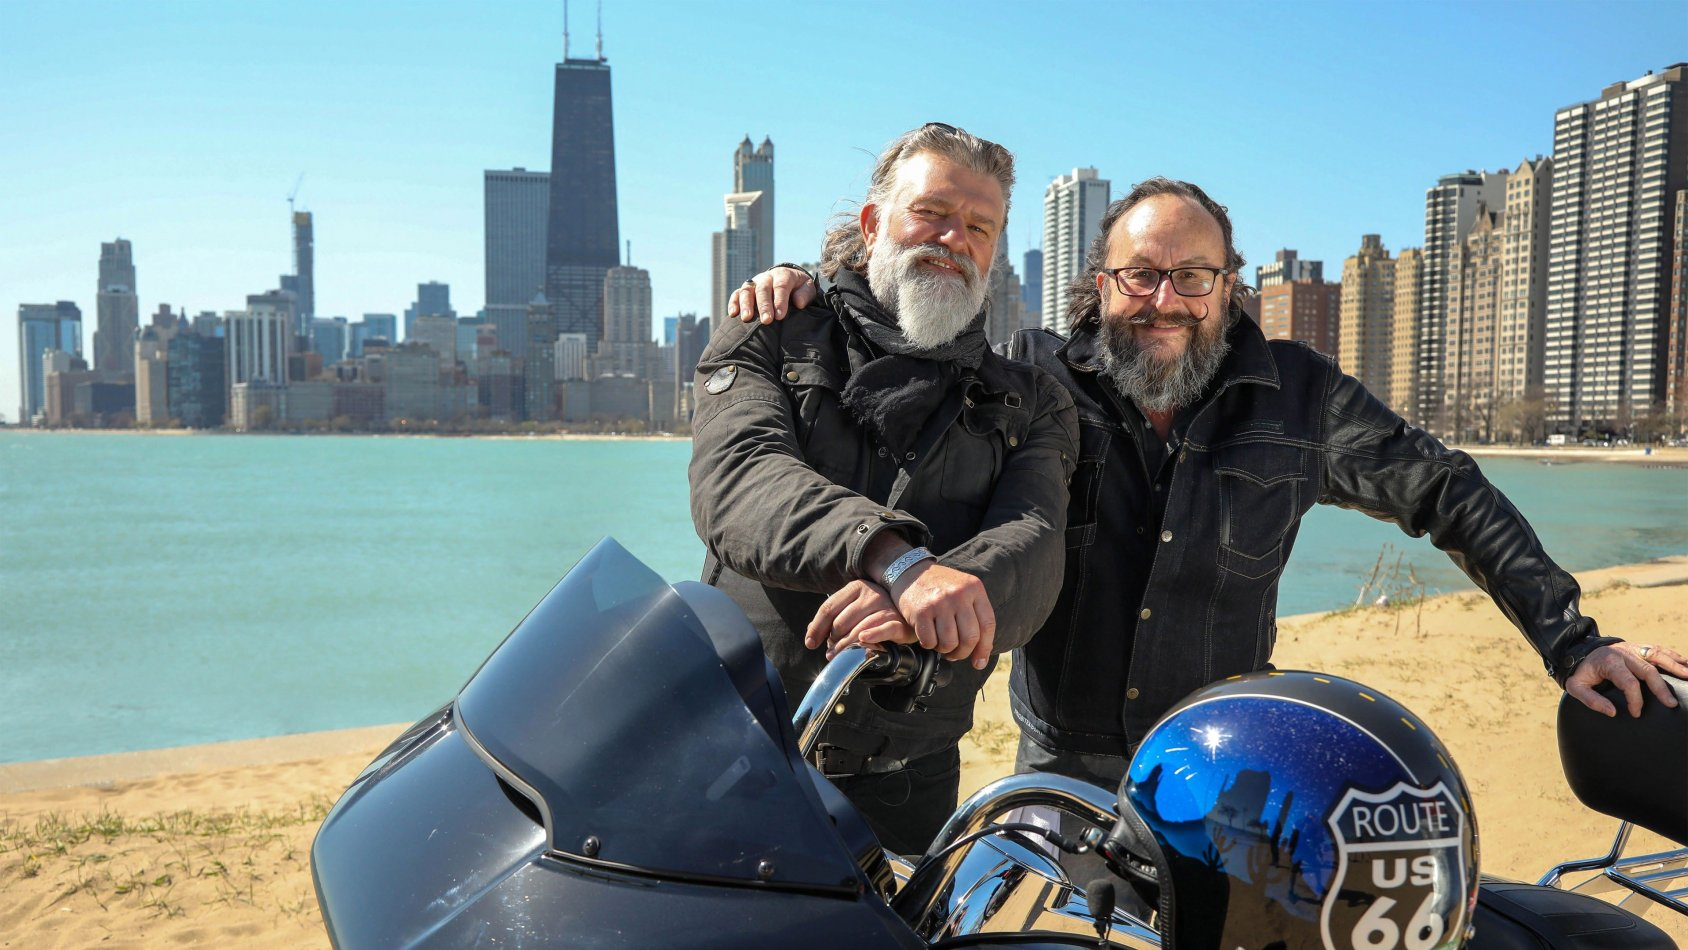 Hairy Bikers: Ride Route 66